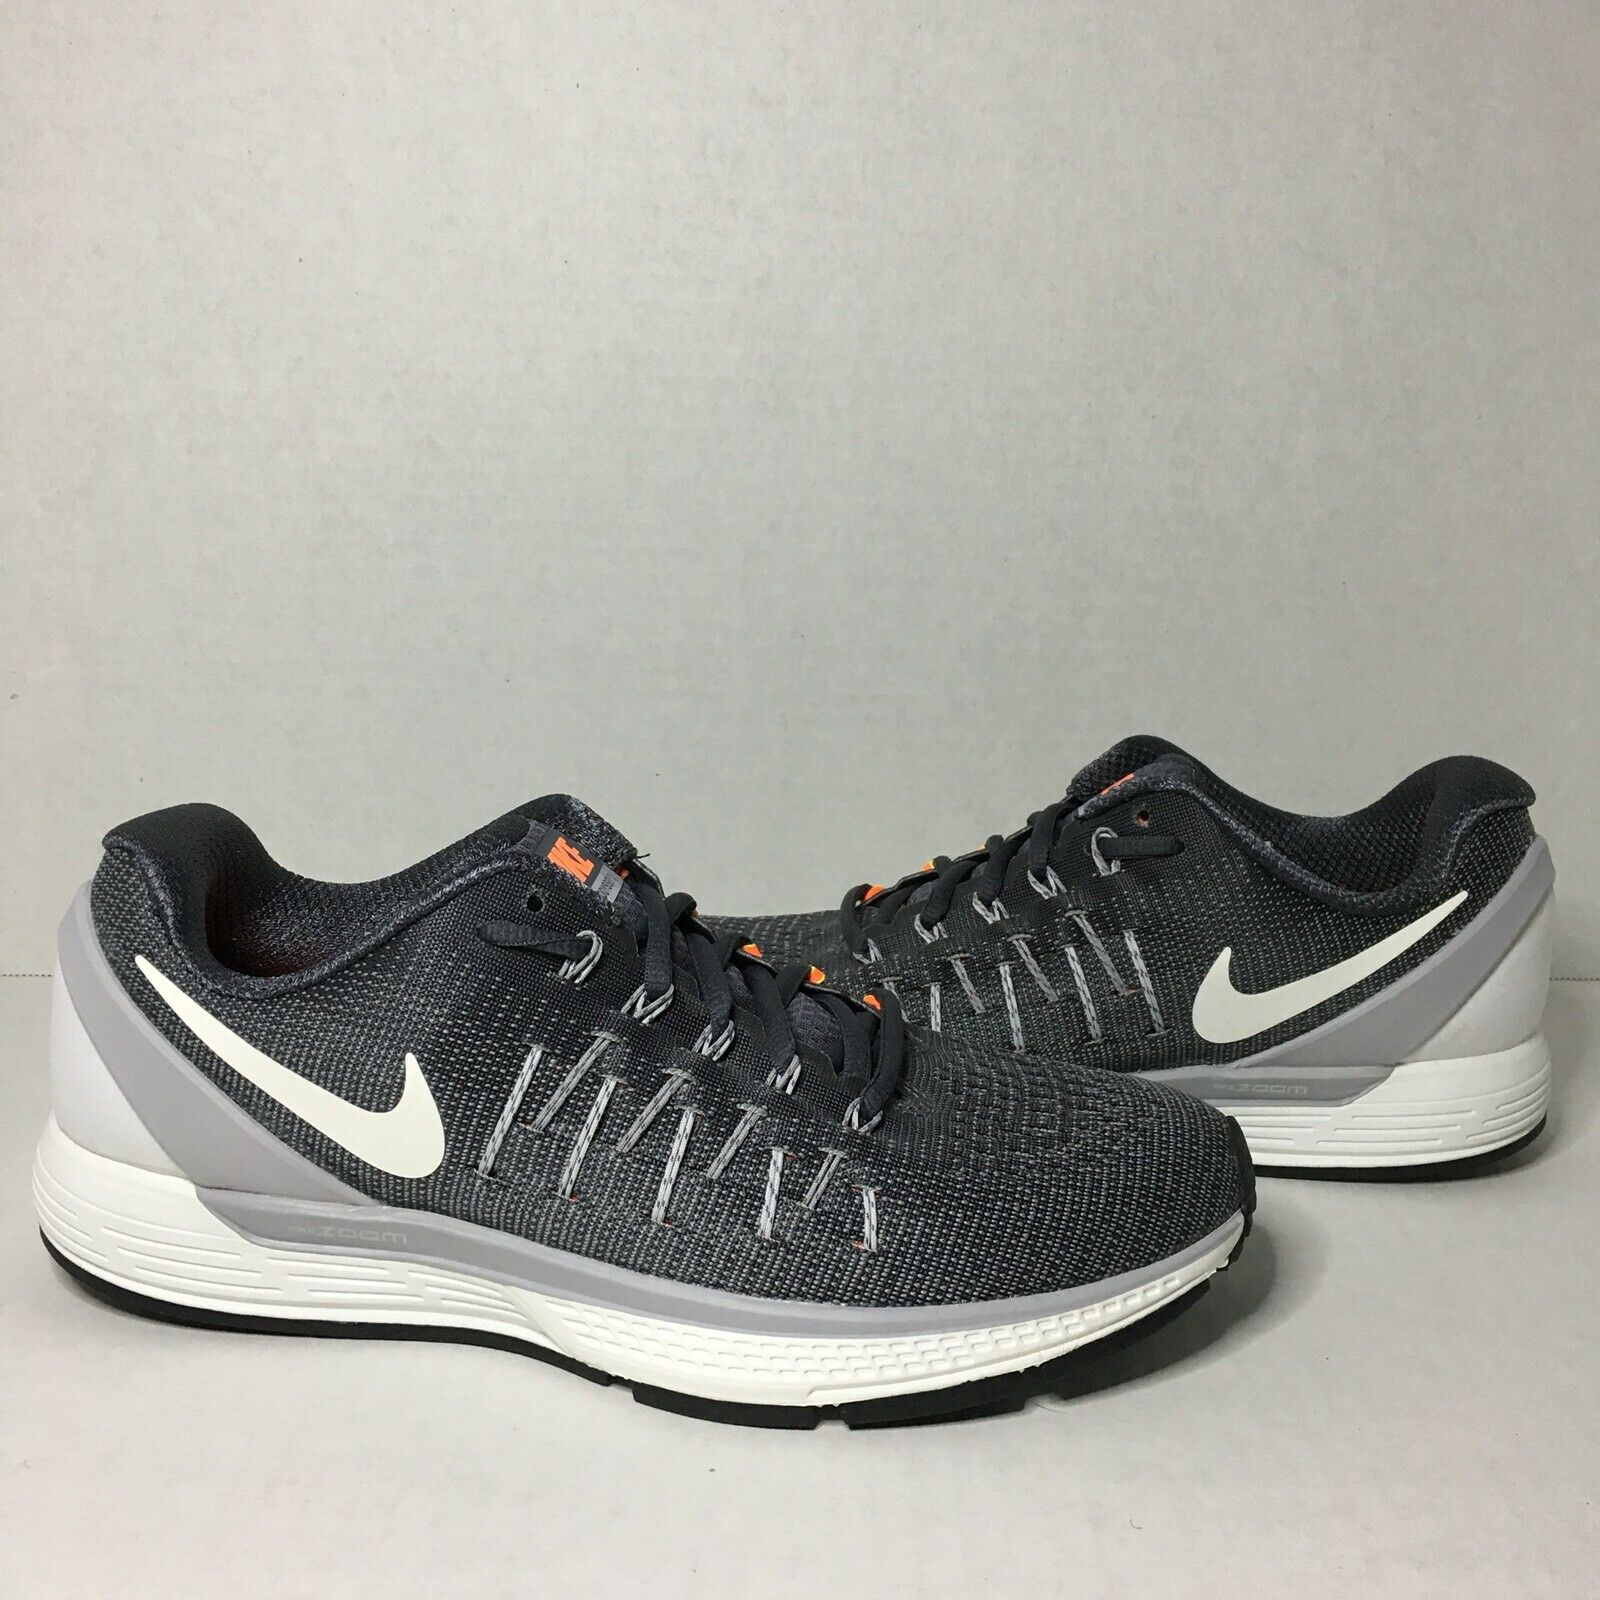 NIKE AIR ZOOM ODYSSEY 2  Men's  Athletic Running shoes 844545-002 Sz 7.5